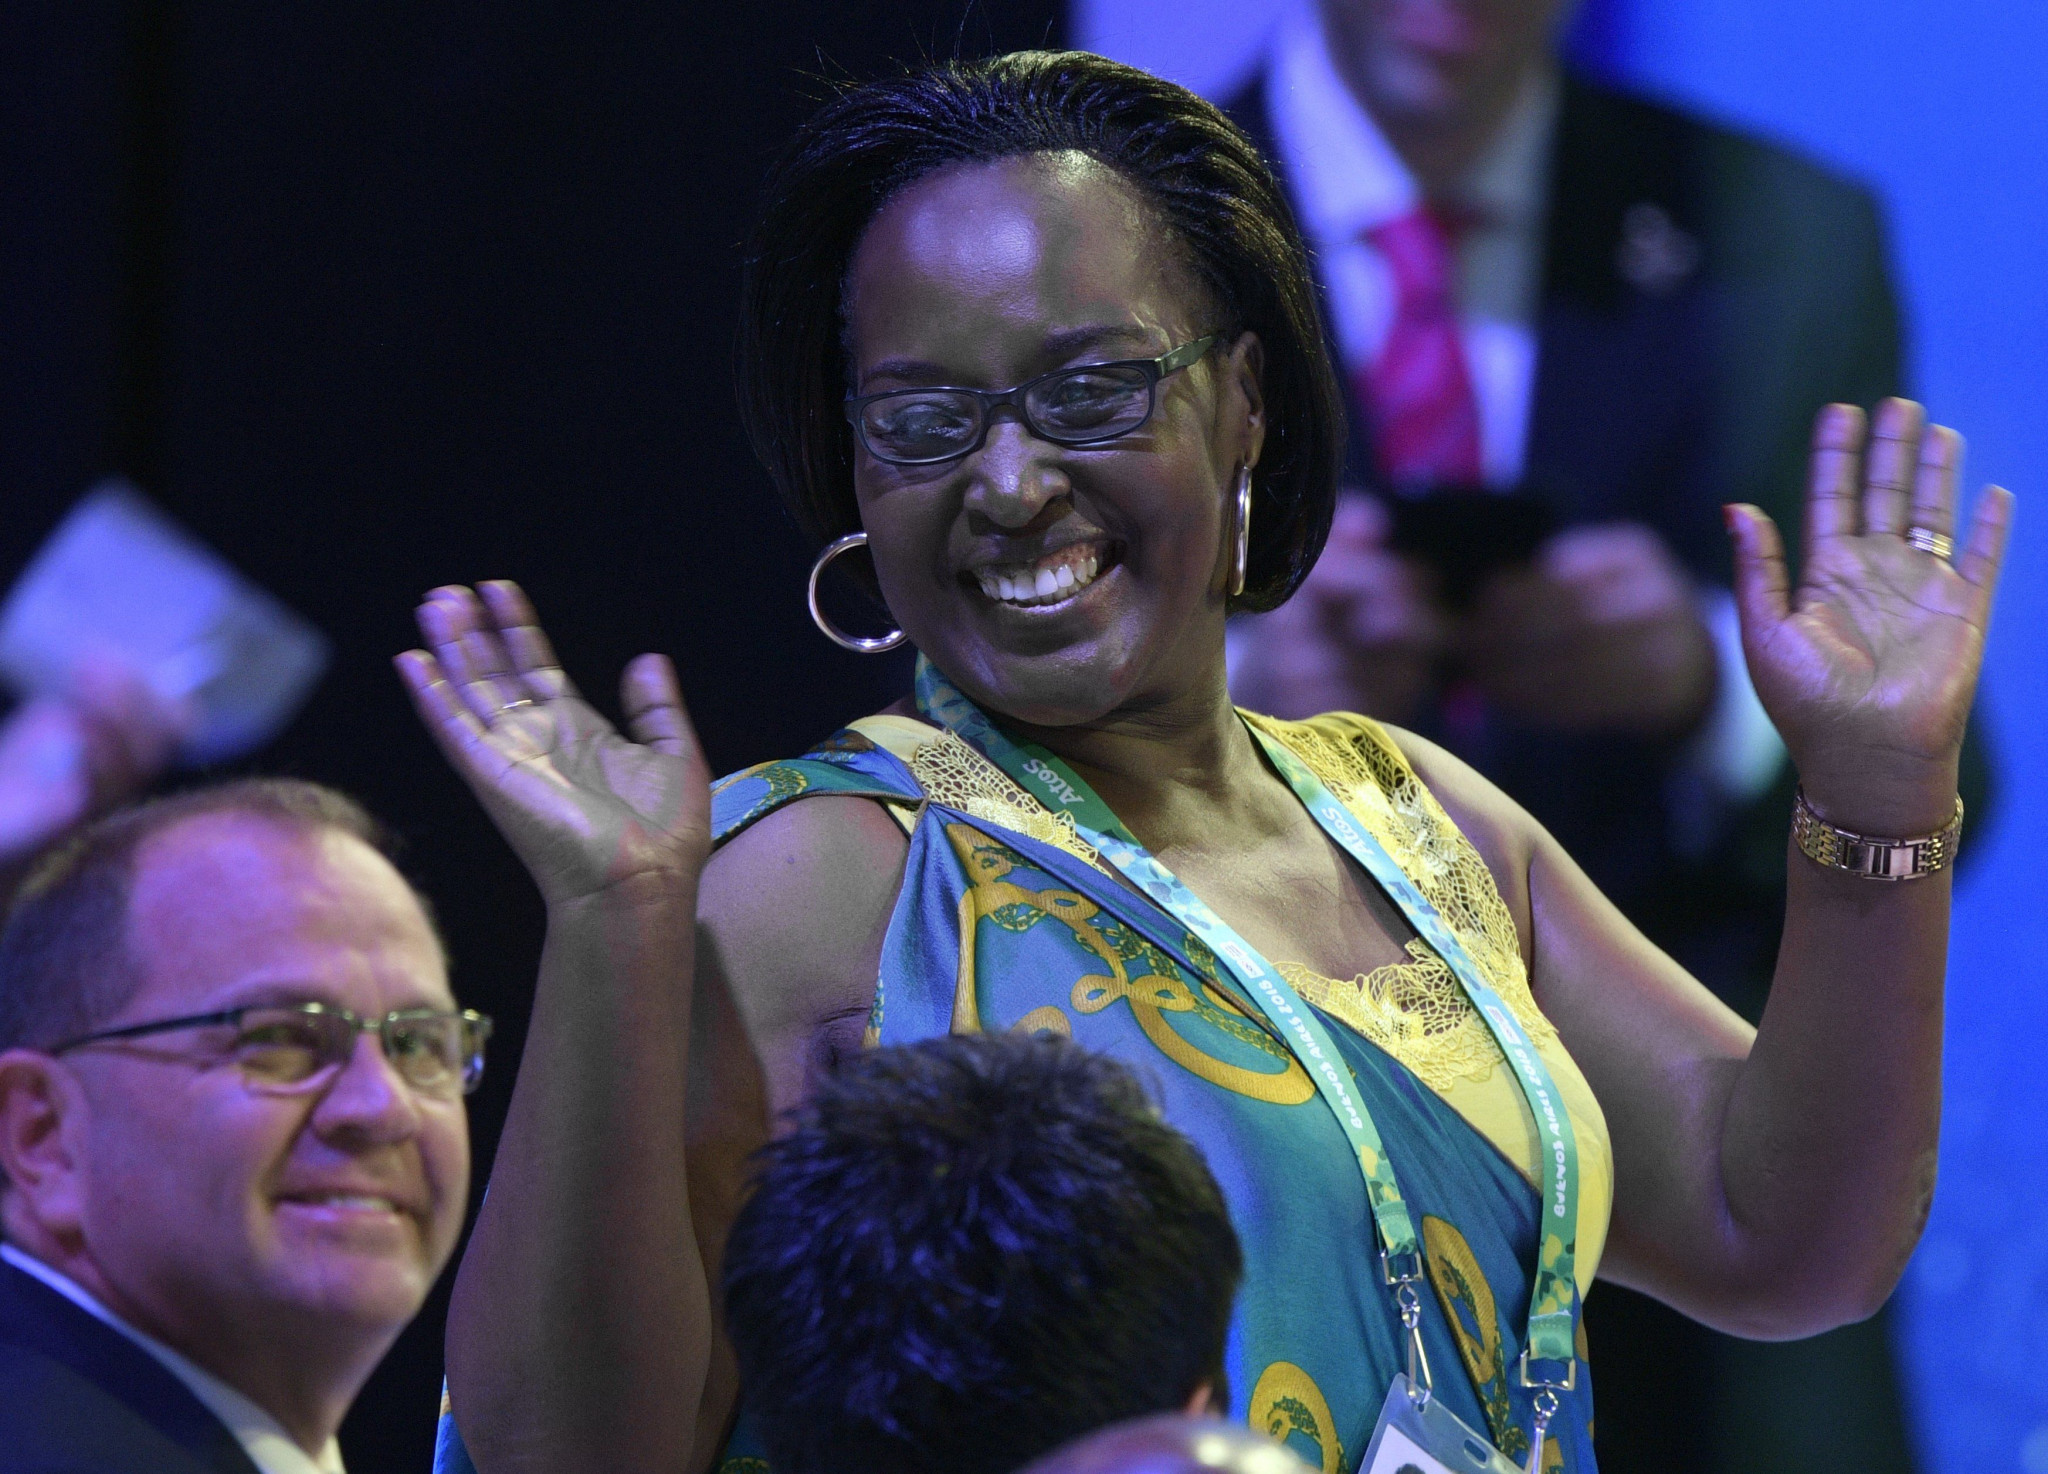 Felicite Rwemarika has lived a remarkable life from child refugee to IOC member ©Getty Images